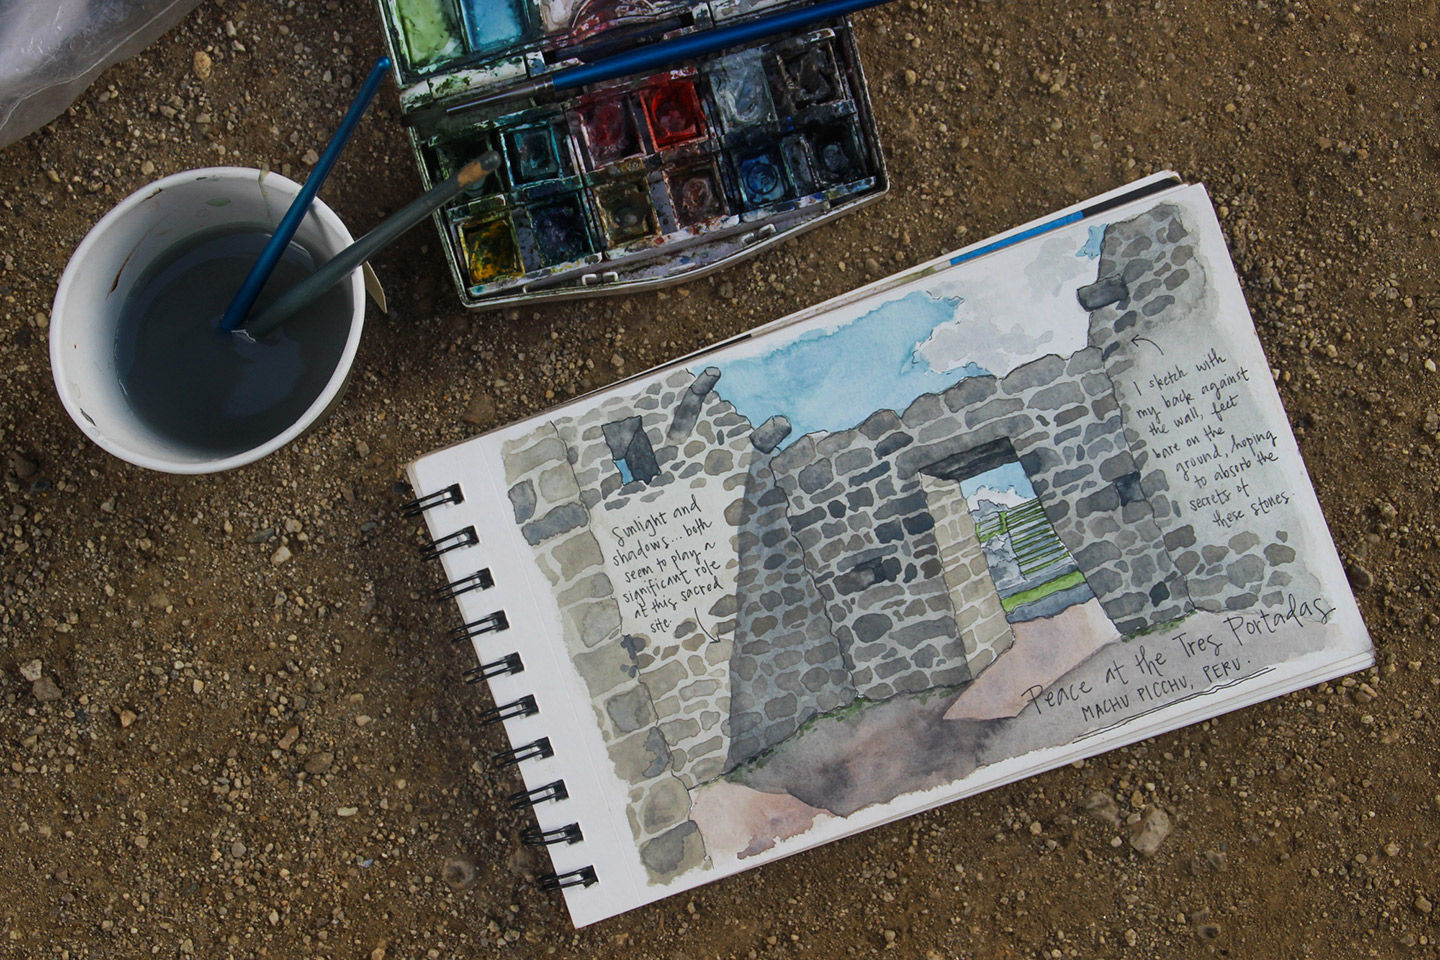 A ground-level sketching session at Machu Picchu.